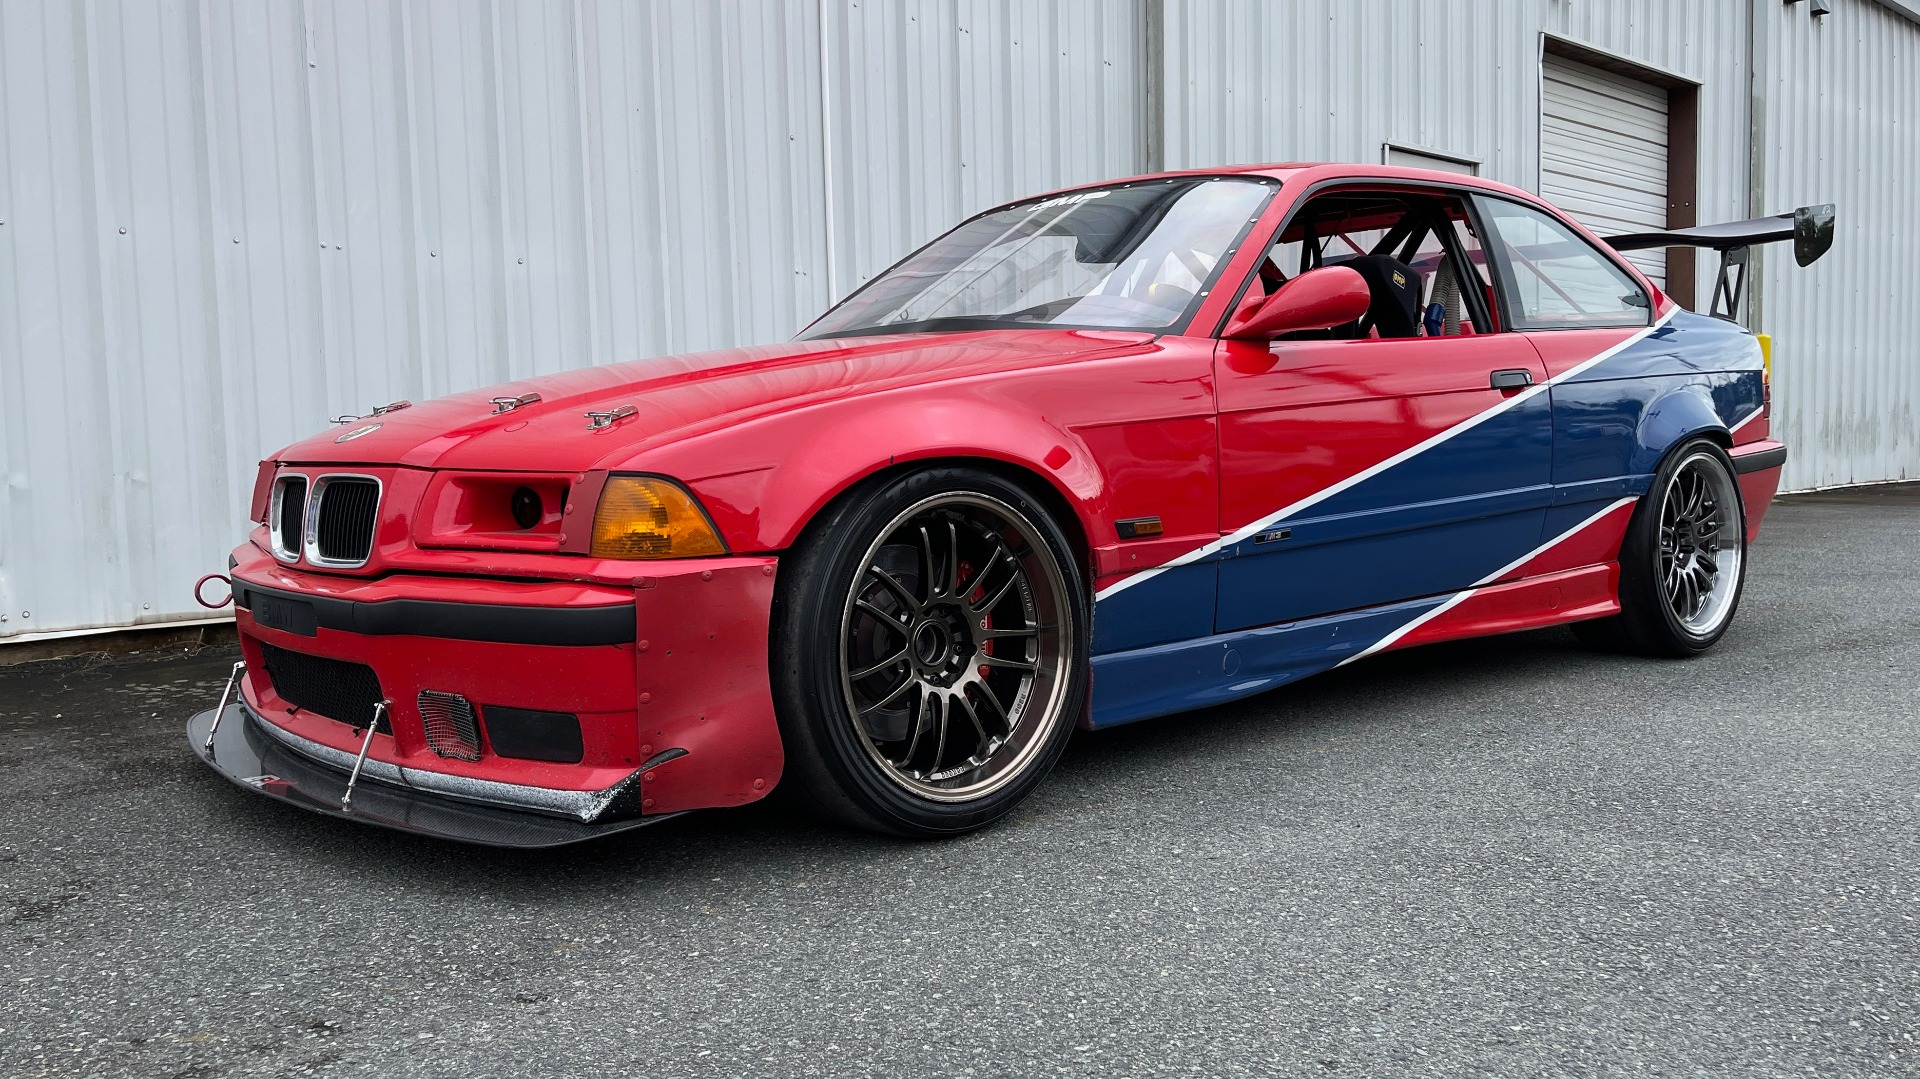 Used 1996 BMW 3-SERIES M3 TRACK CAR / 5-SPD / MANUAL / FULL CAGE / CARBON FIBER WING for sale $47,995 at Formula Imports in Charlotte NC 28227 12